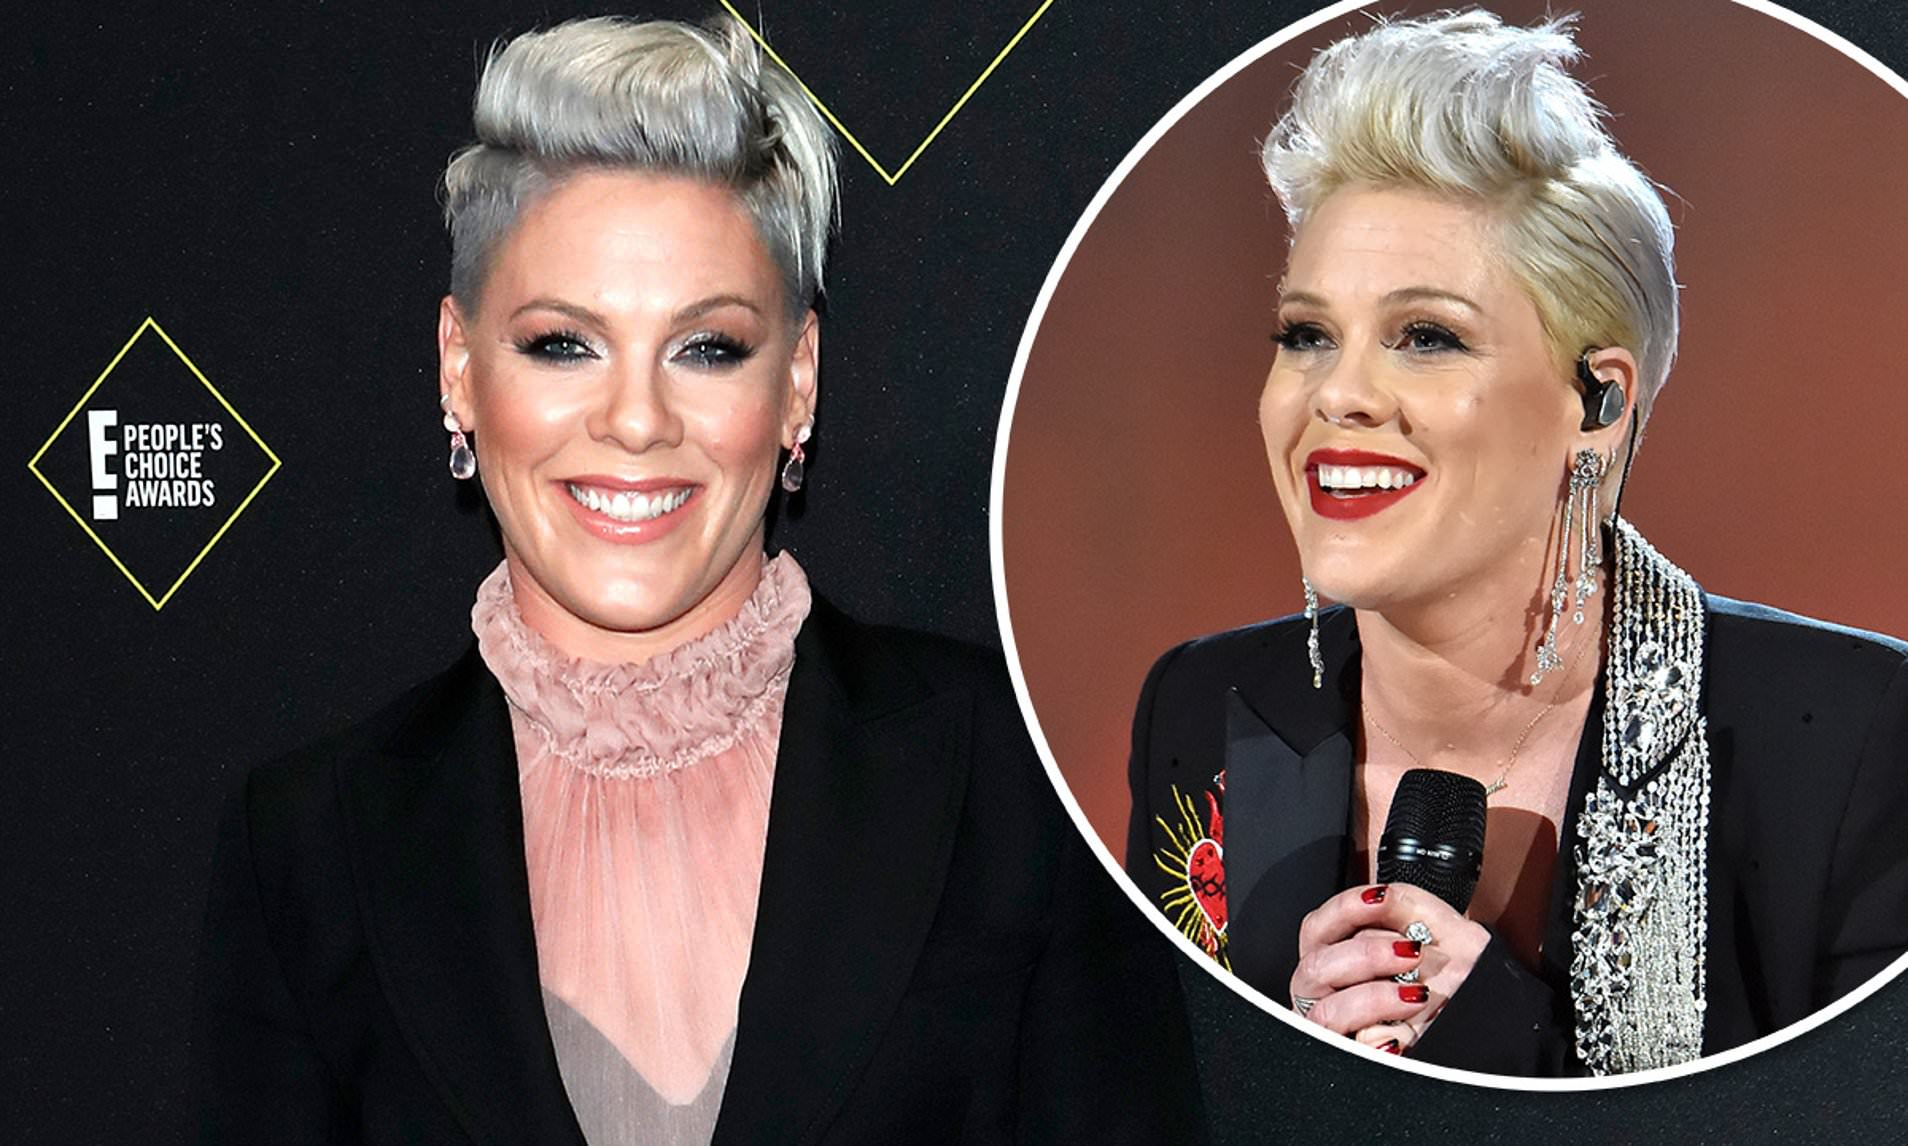 Pink Becomes UK's Most-Played Female Artist of 21st Century